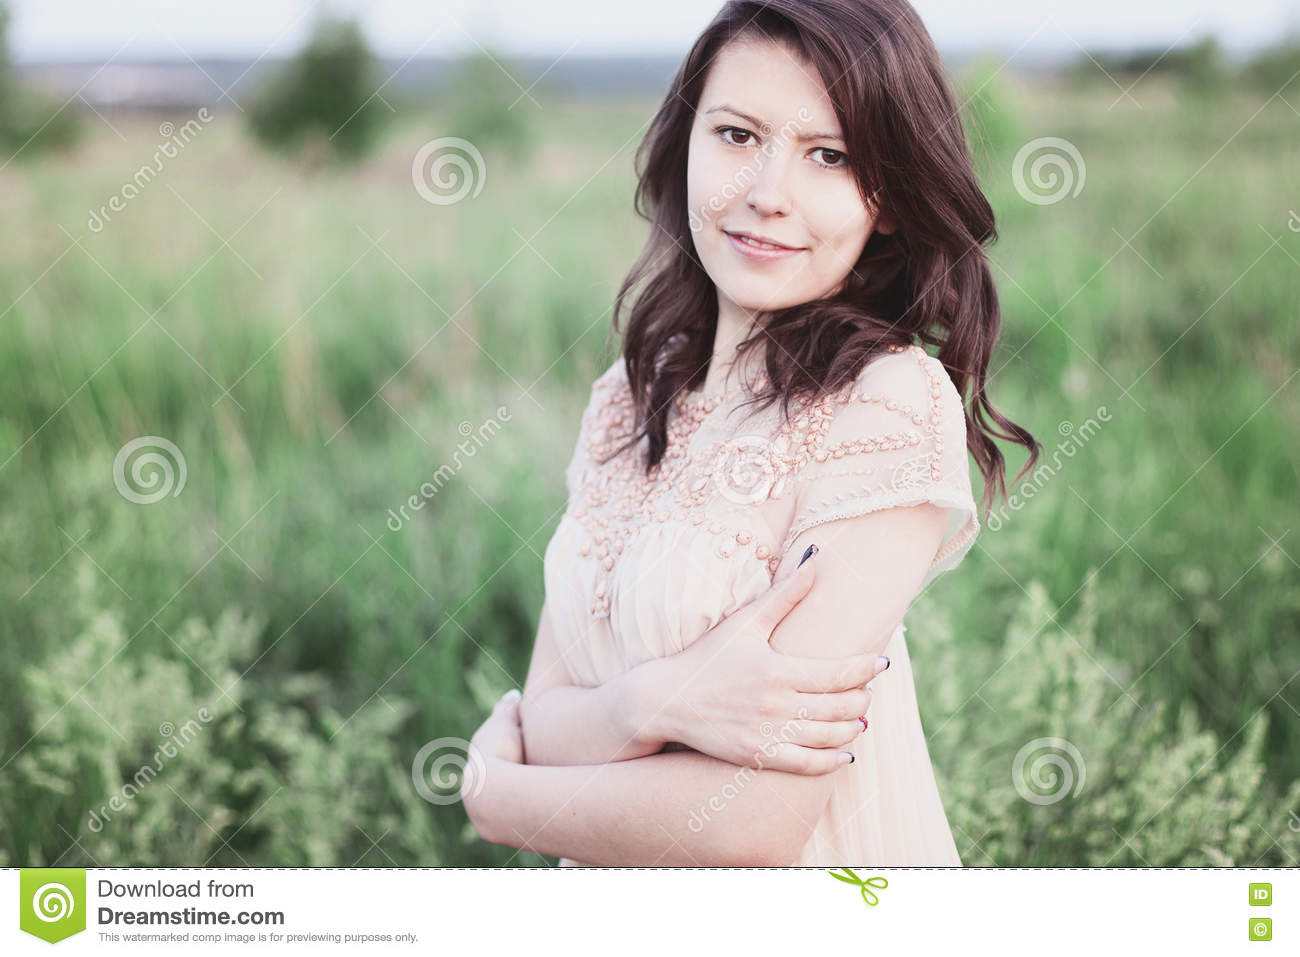 Beautiful Girl Dress With Brown Hair, Hot Summer Day Park